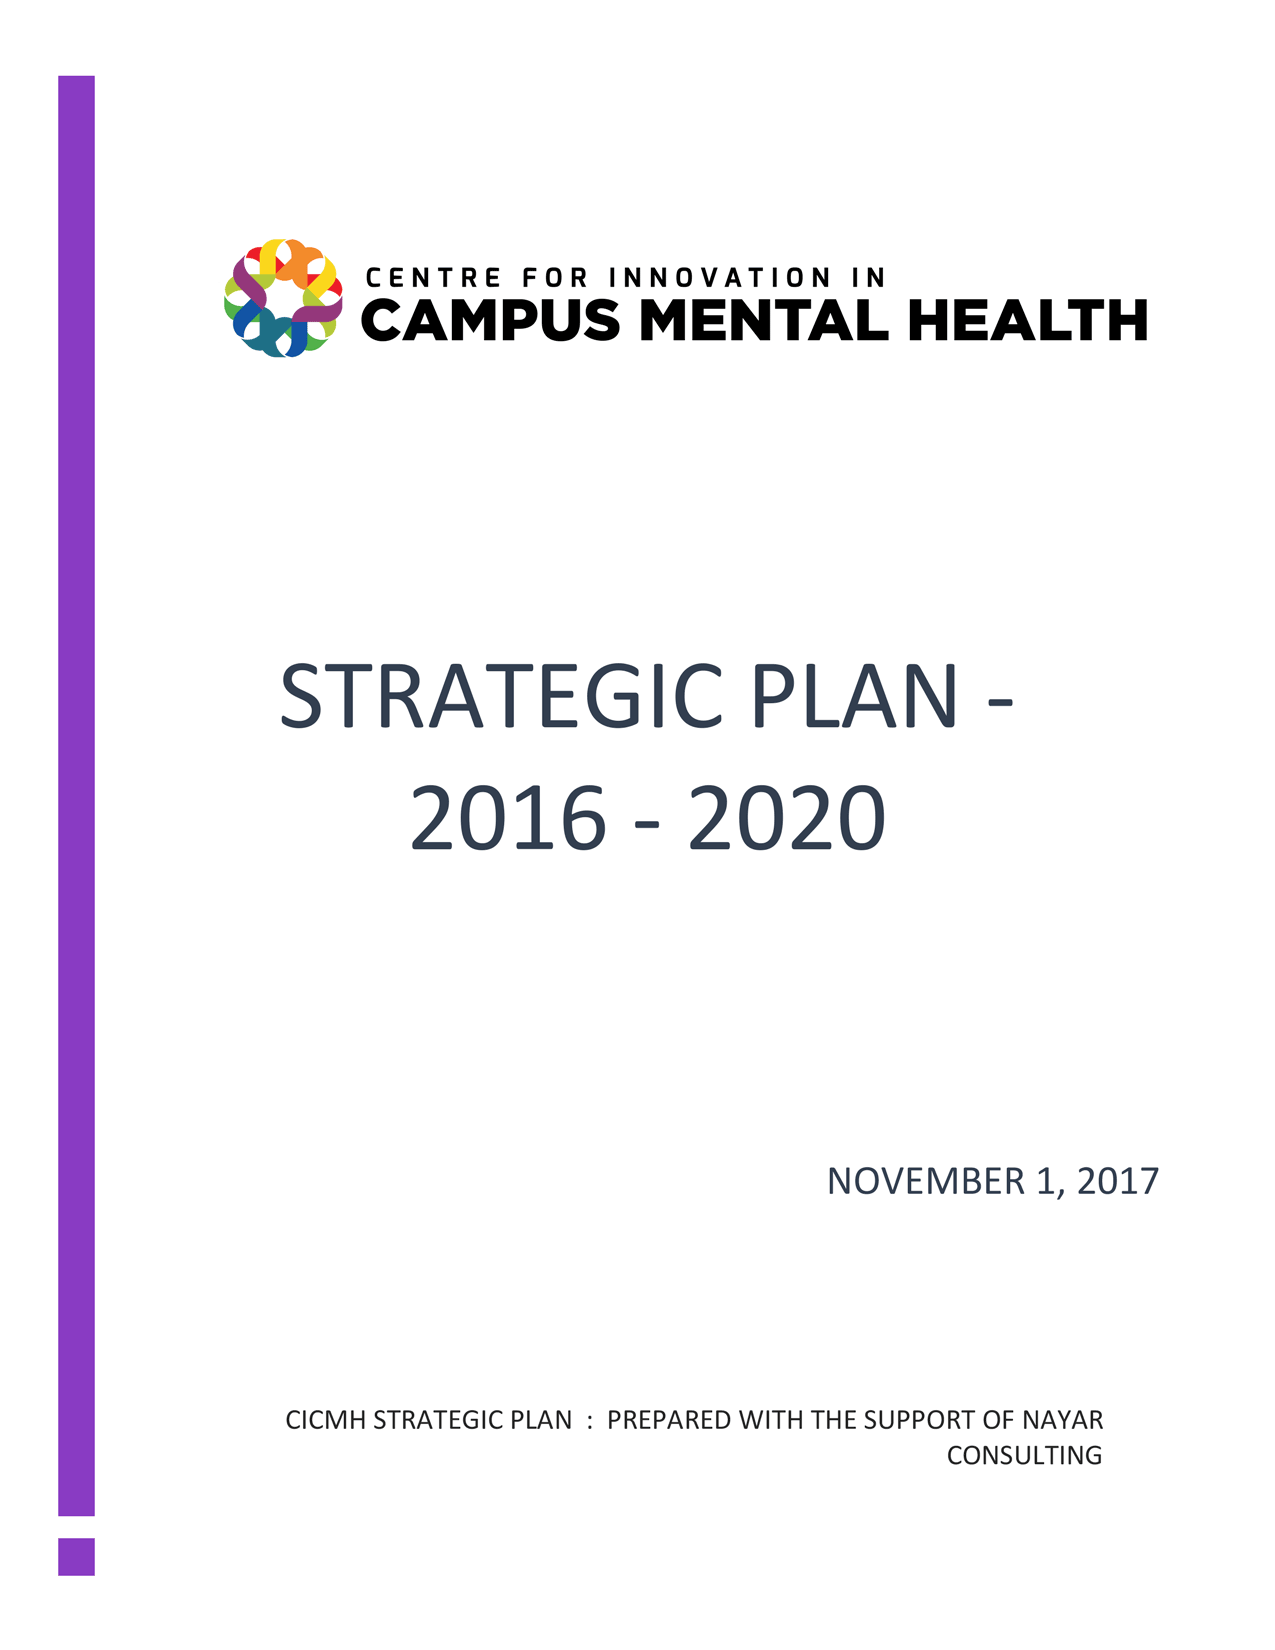 CICMH Strategic Plan 2016-2020